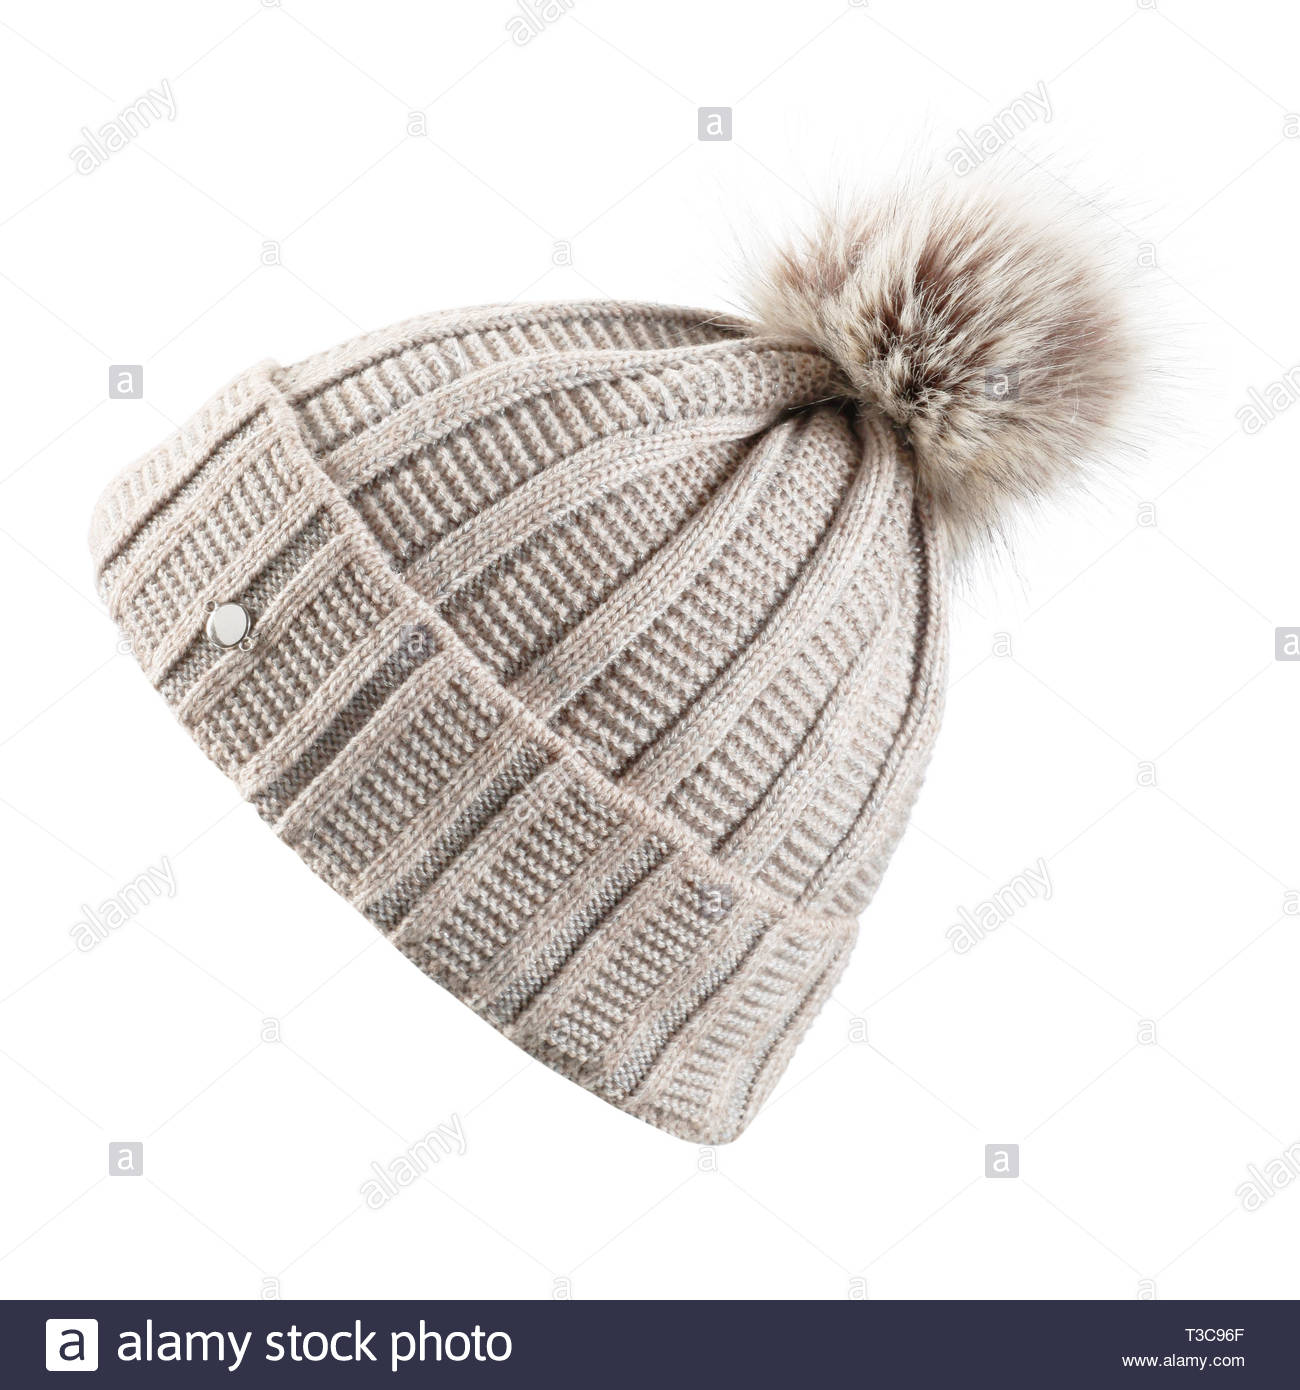 Beige Knitted Hat with a Faux Fur Pompom Isolated on White Background. Ladies Cream Wool Knit Ski Beanie. Outdoors Casual Winter Two Tone Hat Knitting - Stock Image